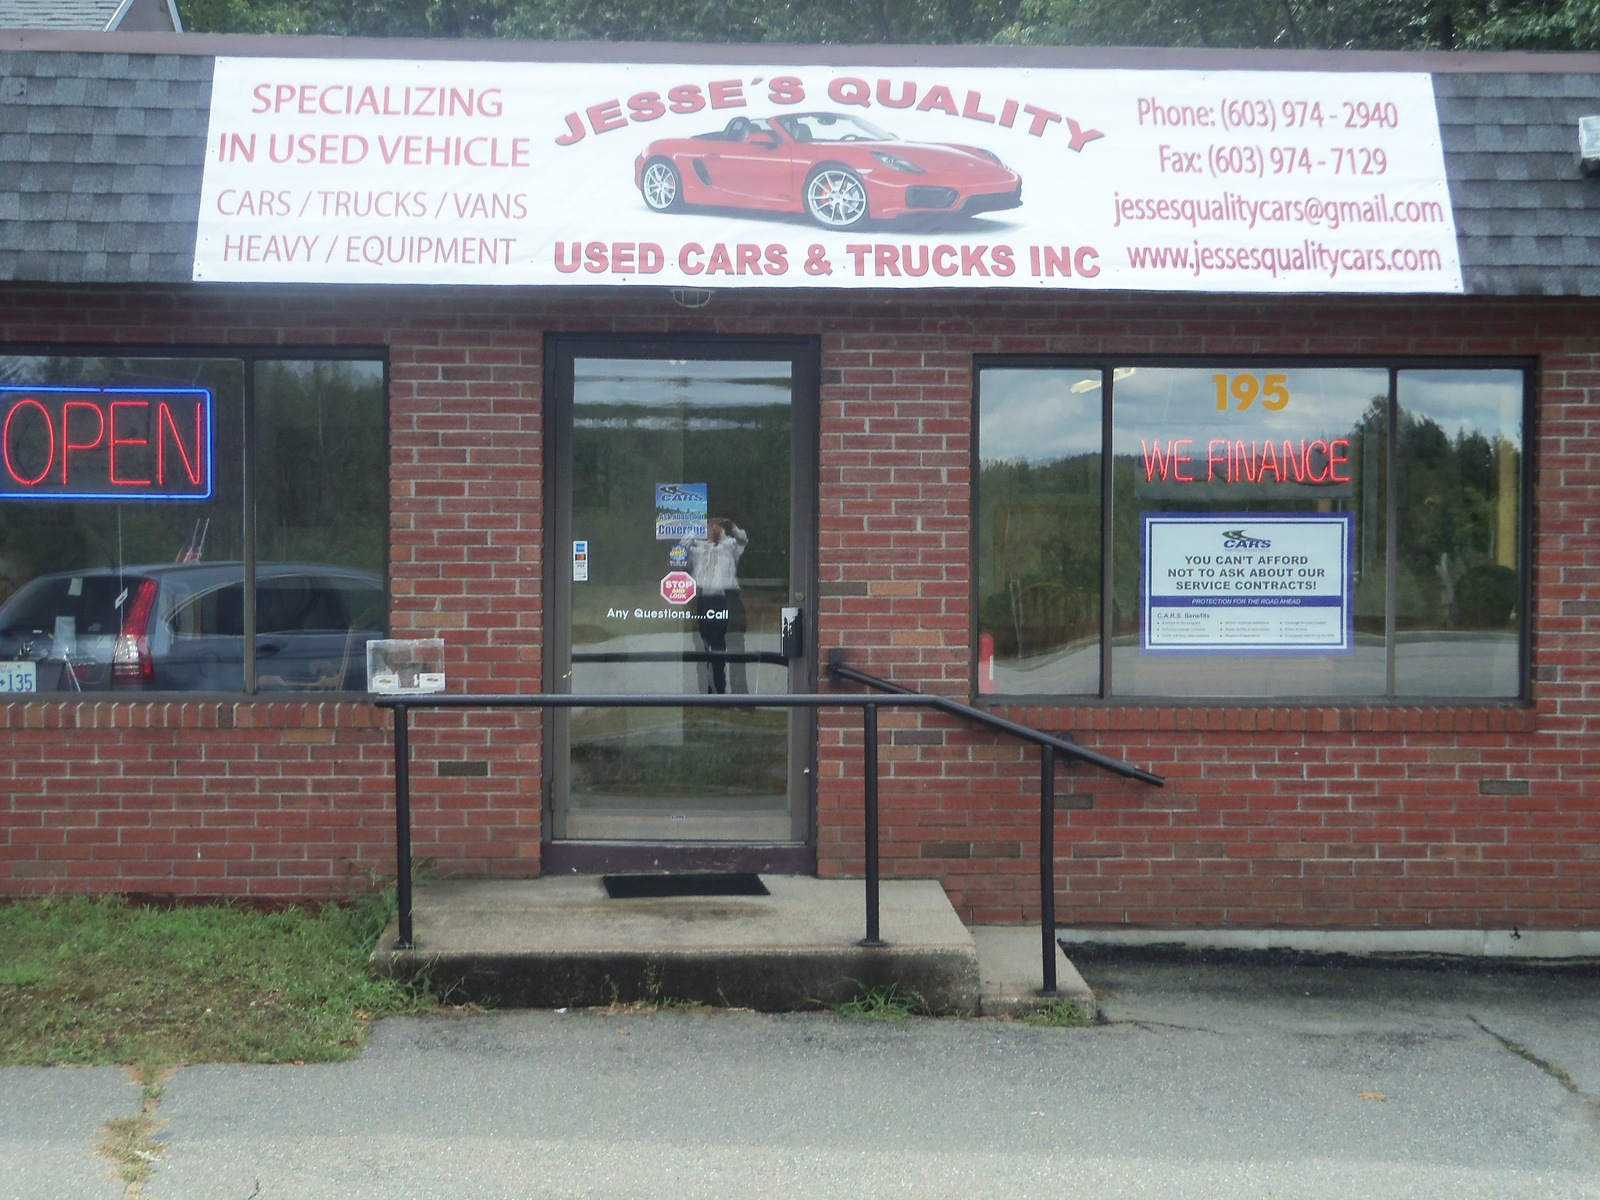 Jesse's Quality Used Cars & Trucks Inc - Plaistow, NH: Read Consumer  reviews, Browse Used and New Cars for Sale